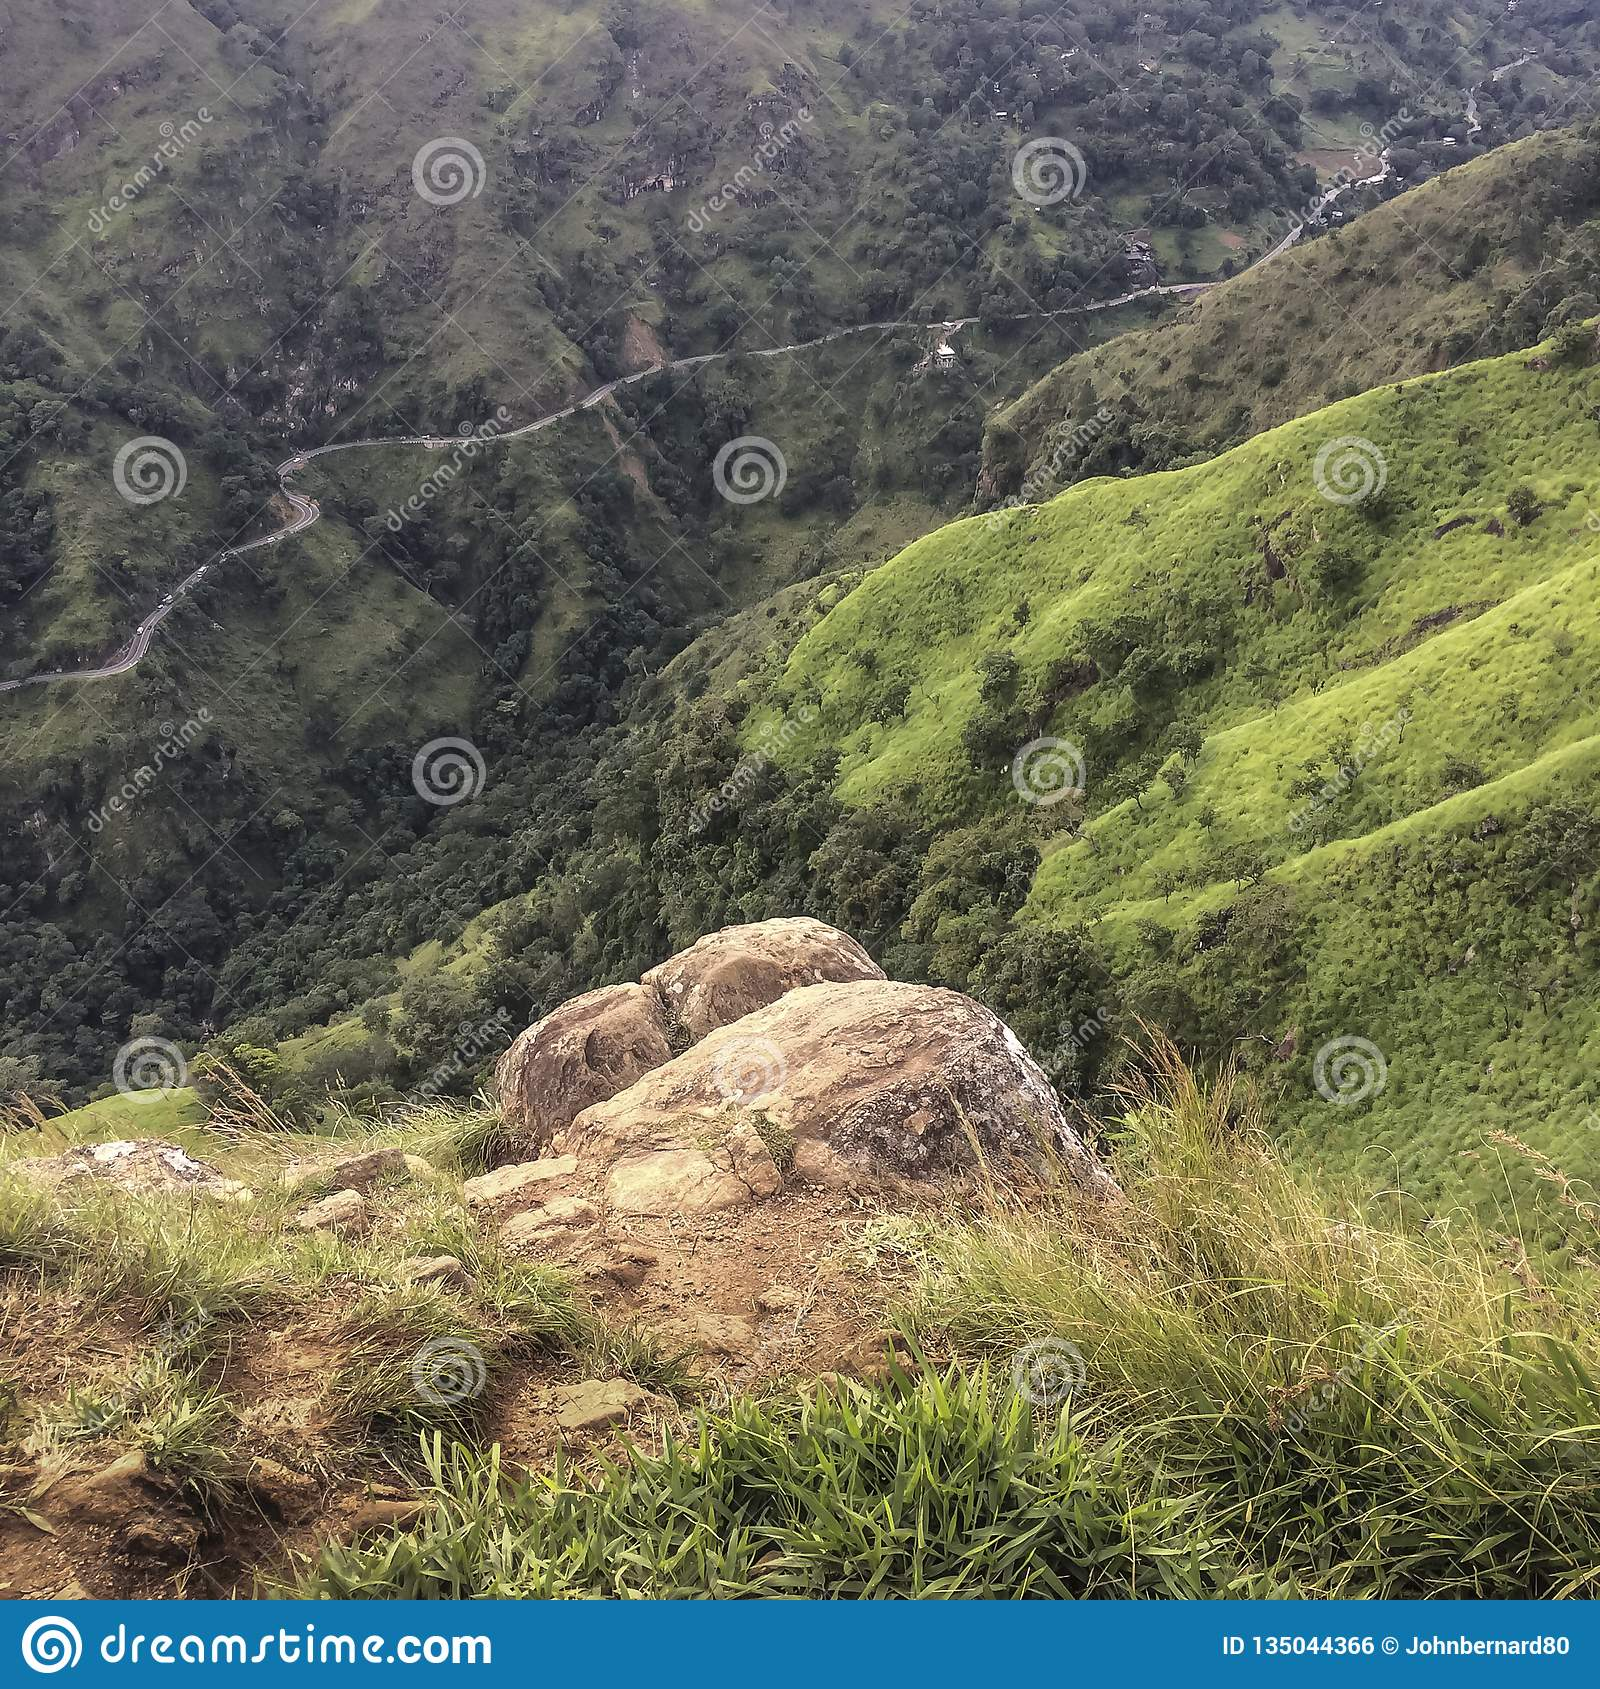 e8117c890c1e85 Ella is a hiking hotspot in the mountain country of Sri Lanka. Some of the  views from hikes in Ella are phenomenal with the region well known for its  tea ...